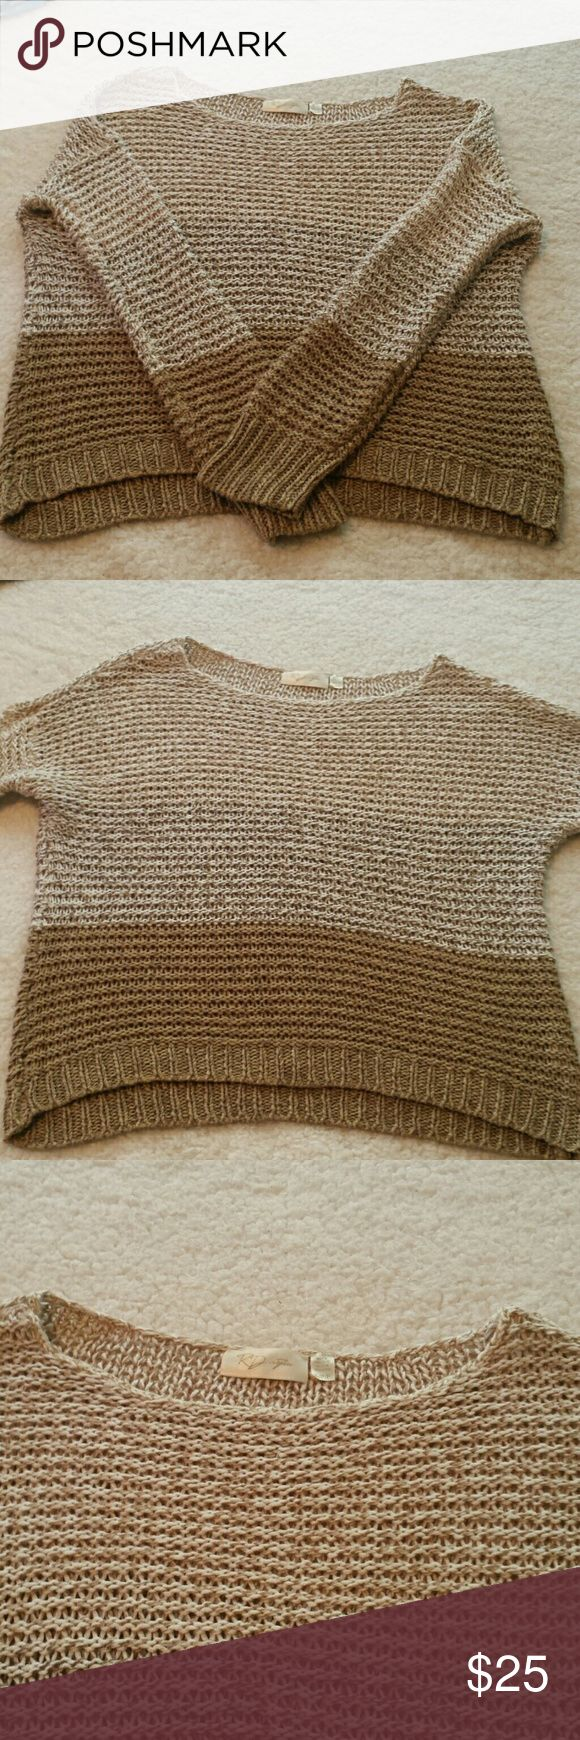 RD Style Ombre Sweater. Size Small. Pretty and casual RD Style ombre sweater. In very good used condition. No stains or holes (that aren't supposed to be there. Lol.) Very nice quality. Size Small. RD Style Sweaters